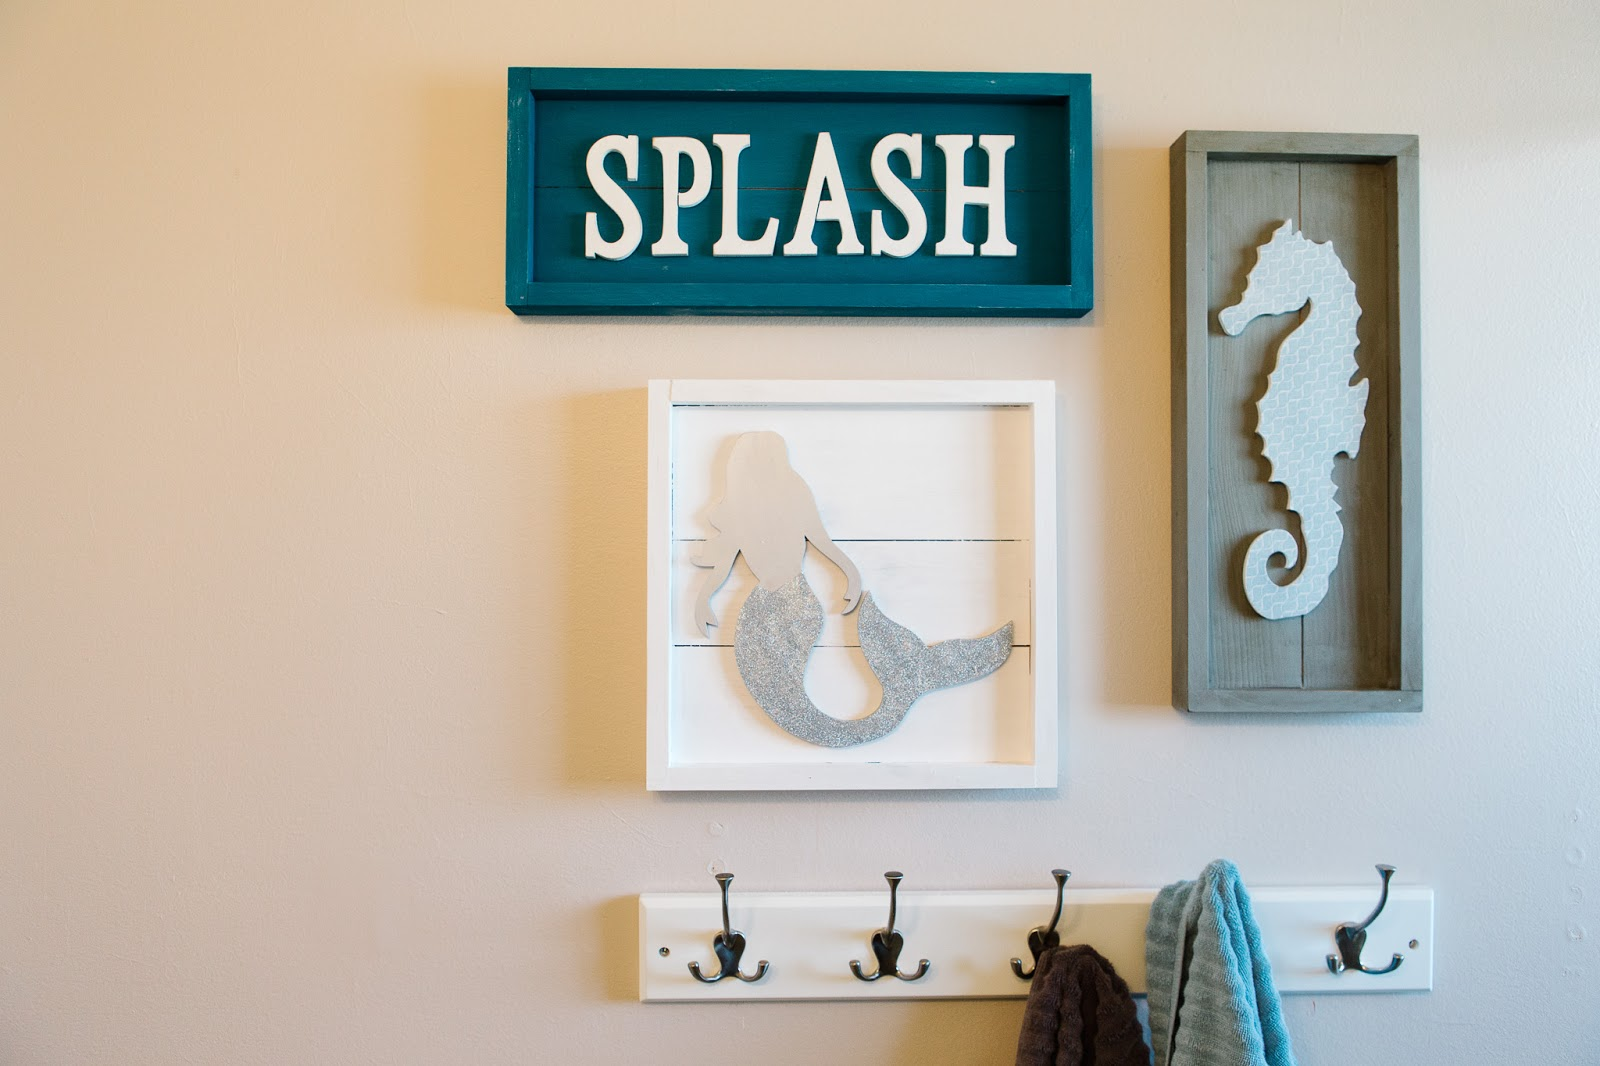 Design Nautical Bathroom Decor nautical bathroom decor the wood connection blog decor